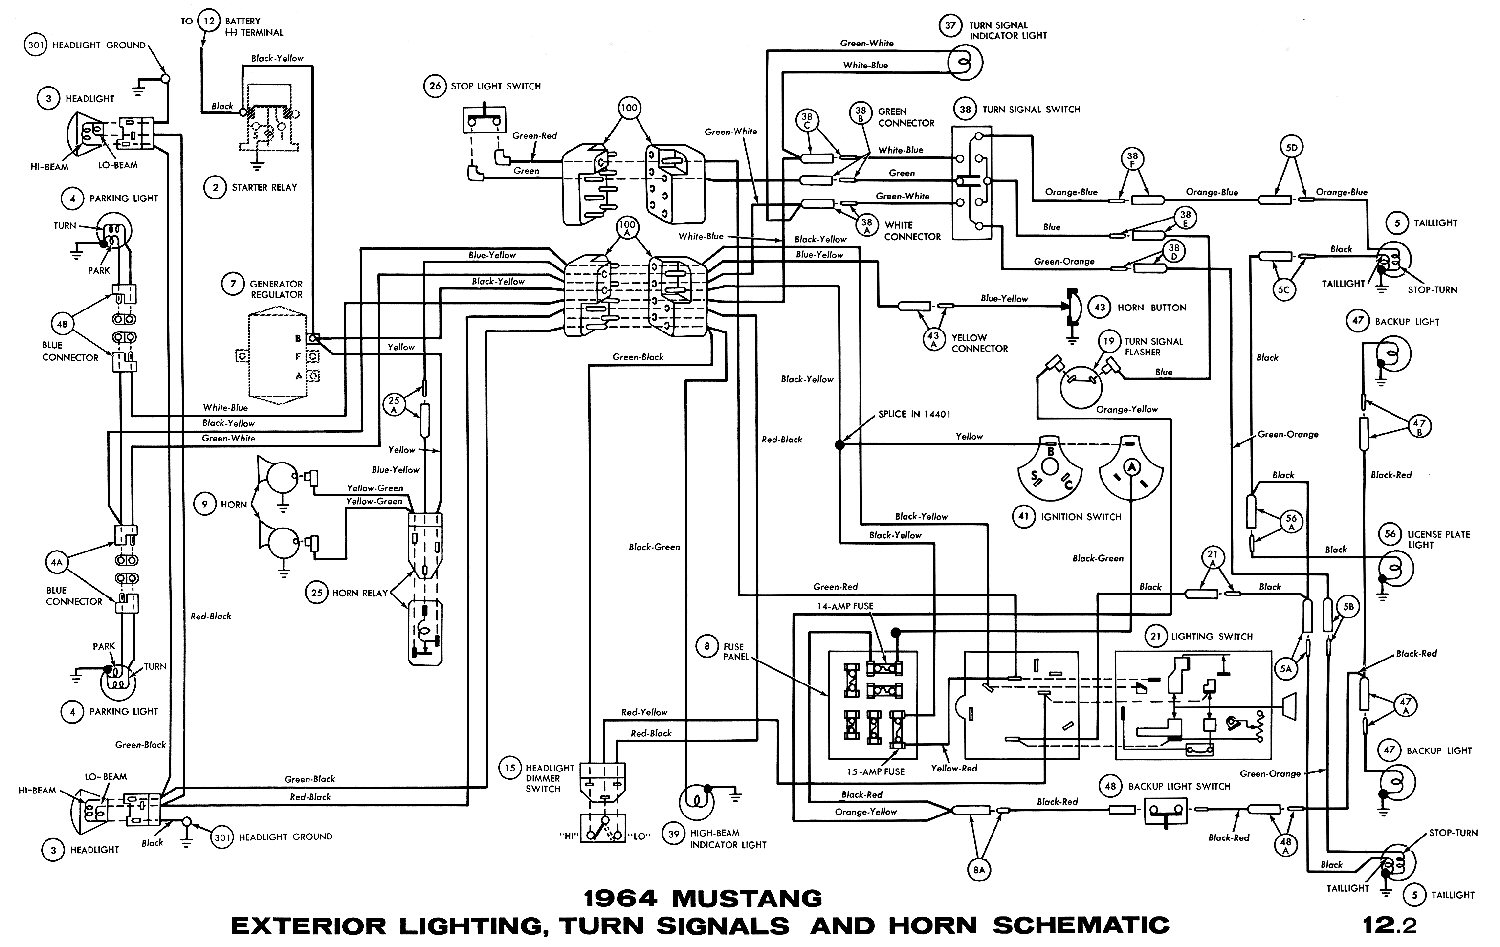 64 mustang wiring diagram enthusiast wiring diagrams u2022 rh bwpartnersautos com 1965 mustang gt wiring diagram 1965 mustang color wiring diagram